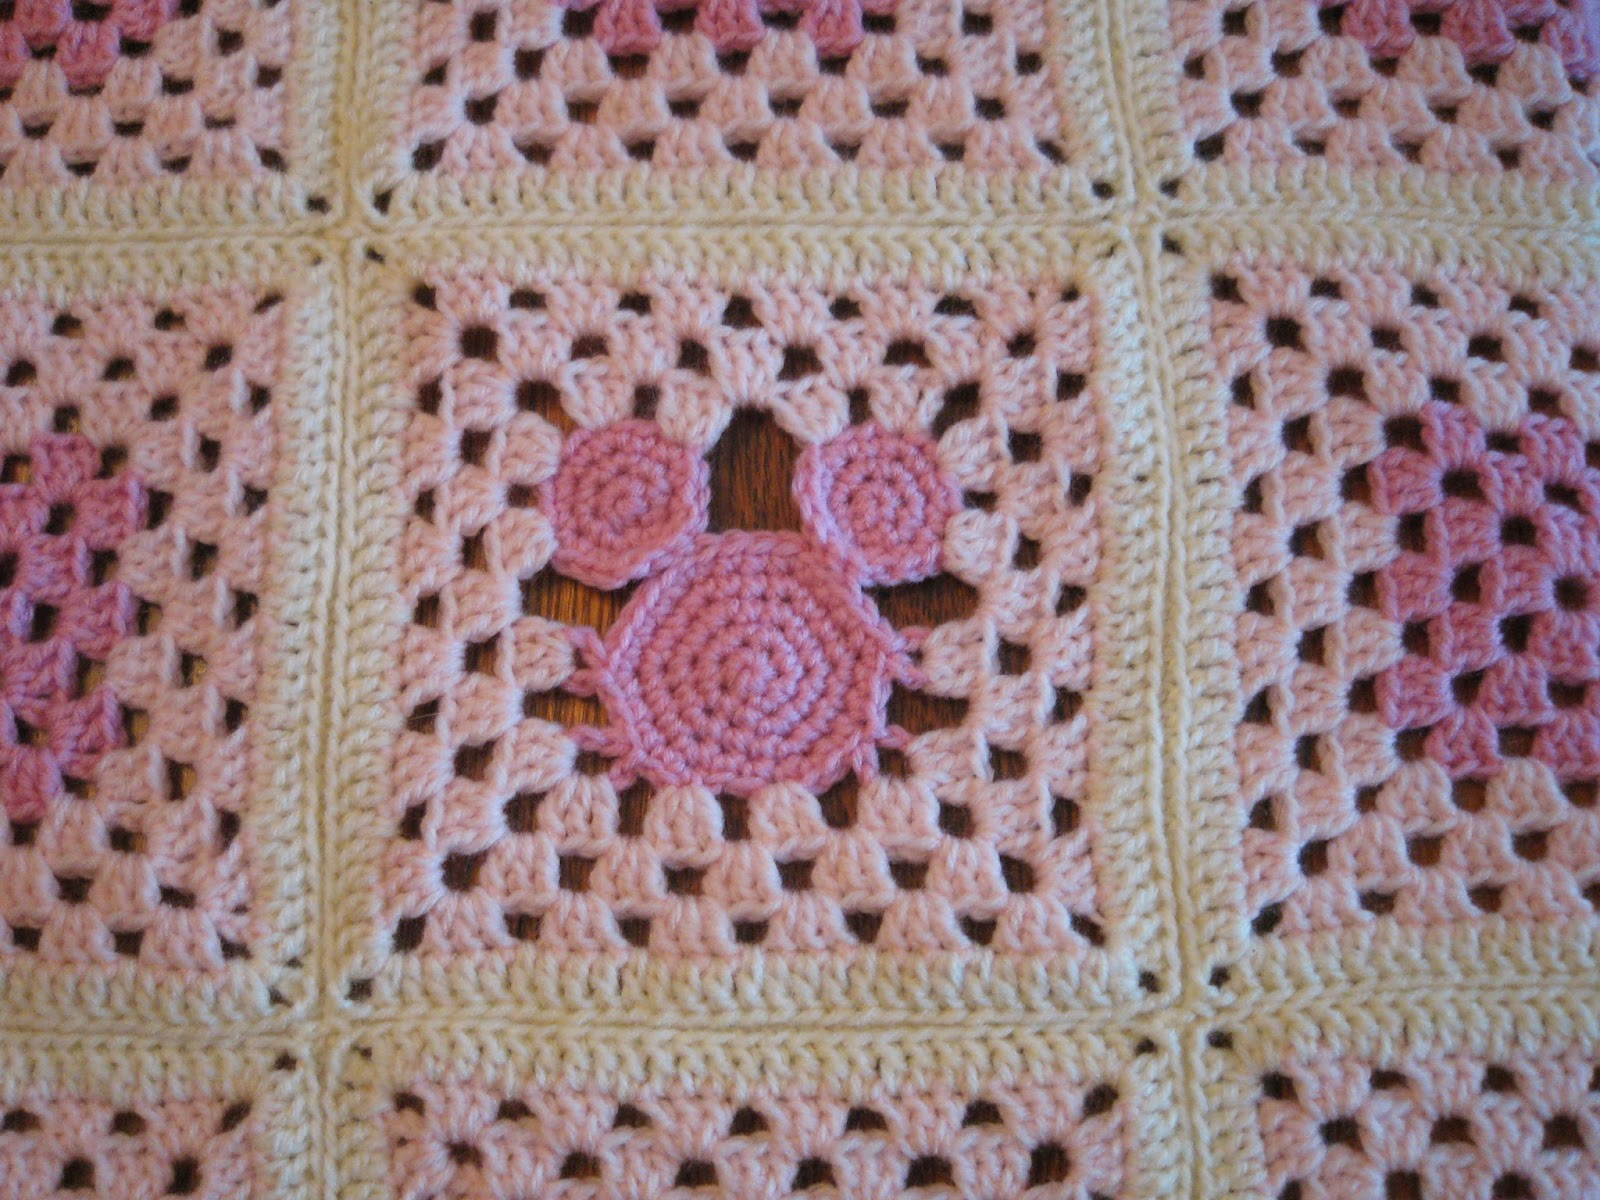 Mickey Mouse Crochet Baby Blanket Pattern : Crochet Machine: Baby Blanket